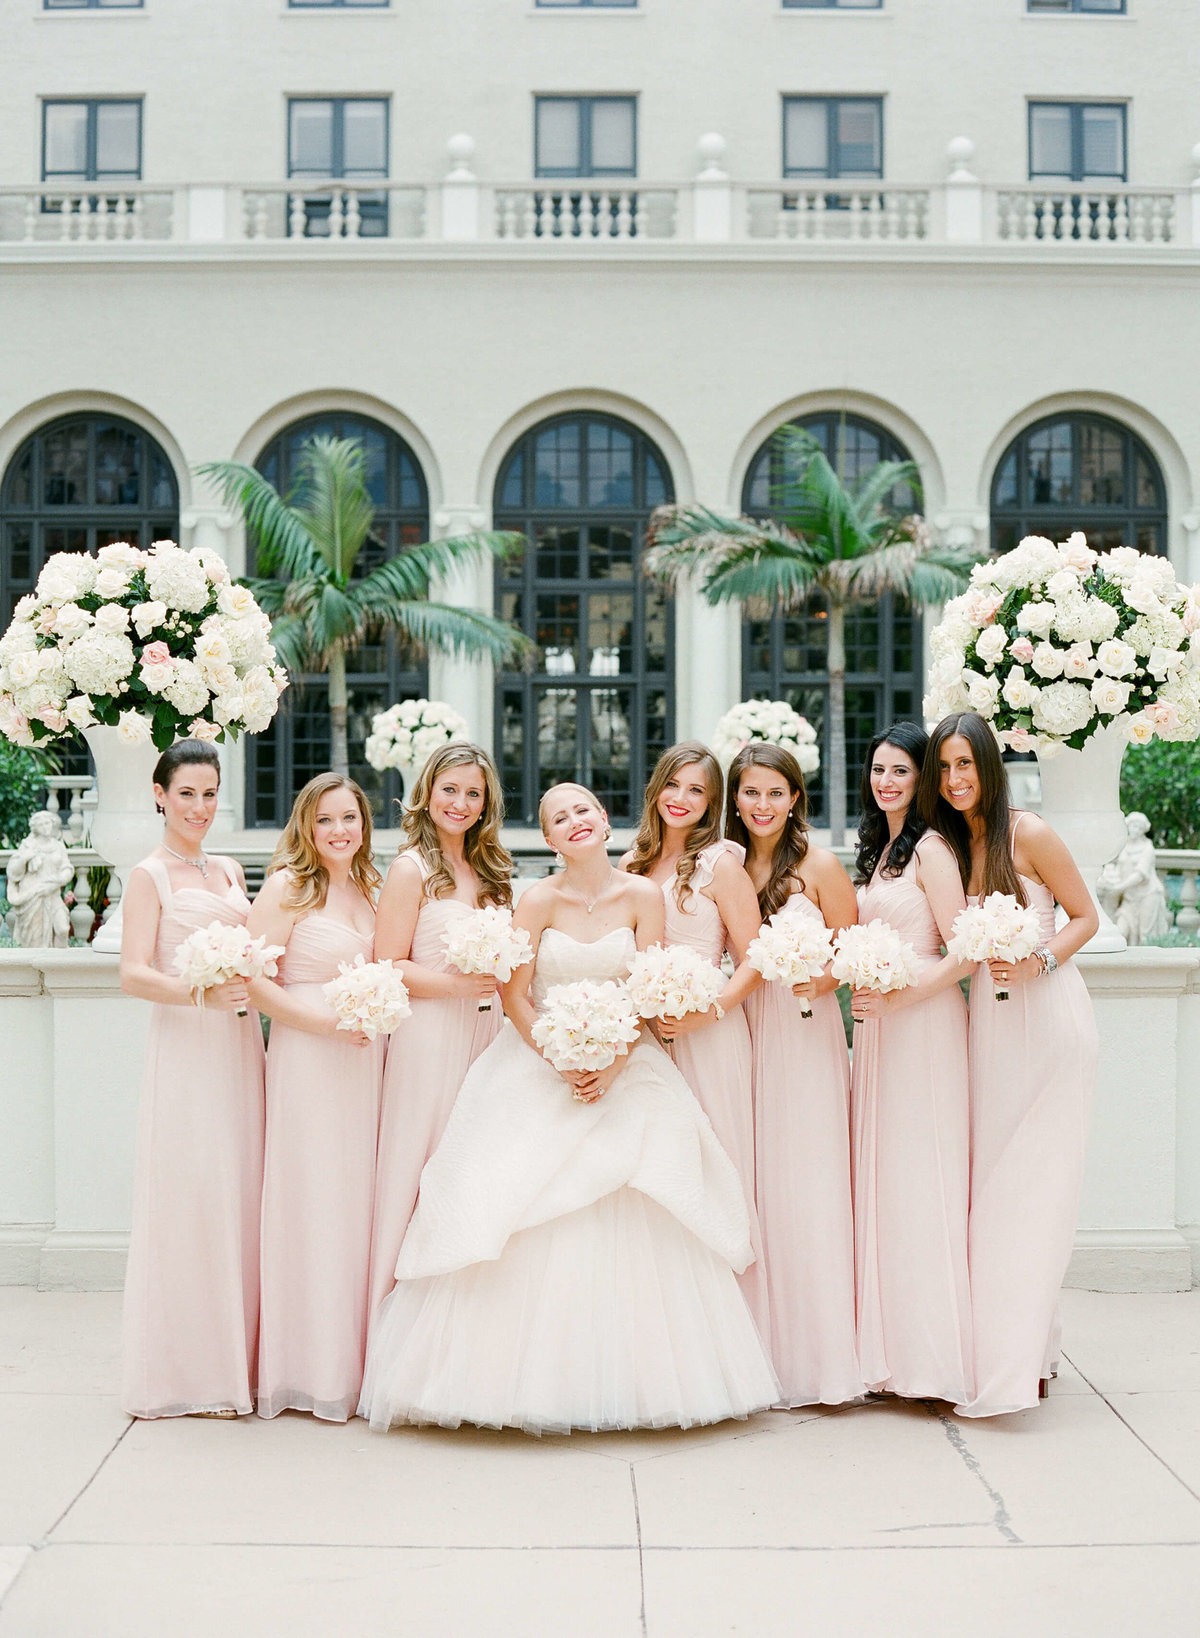 22-KTMerry-weddings-Palm-Beach-bridal-party-pink